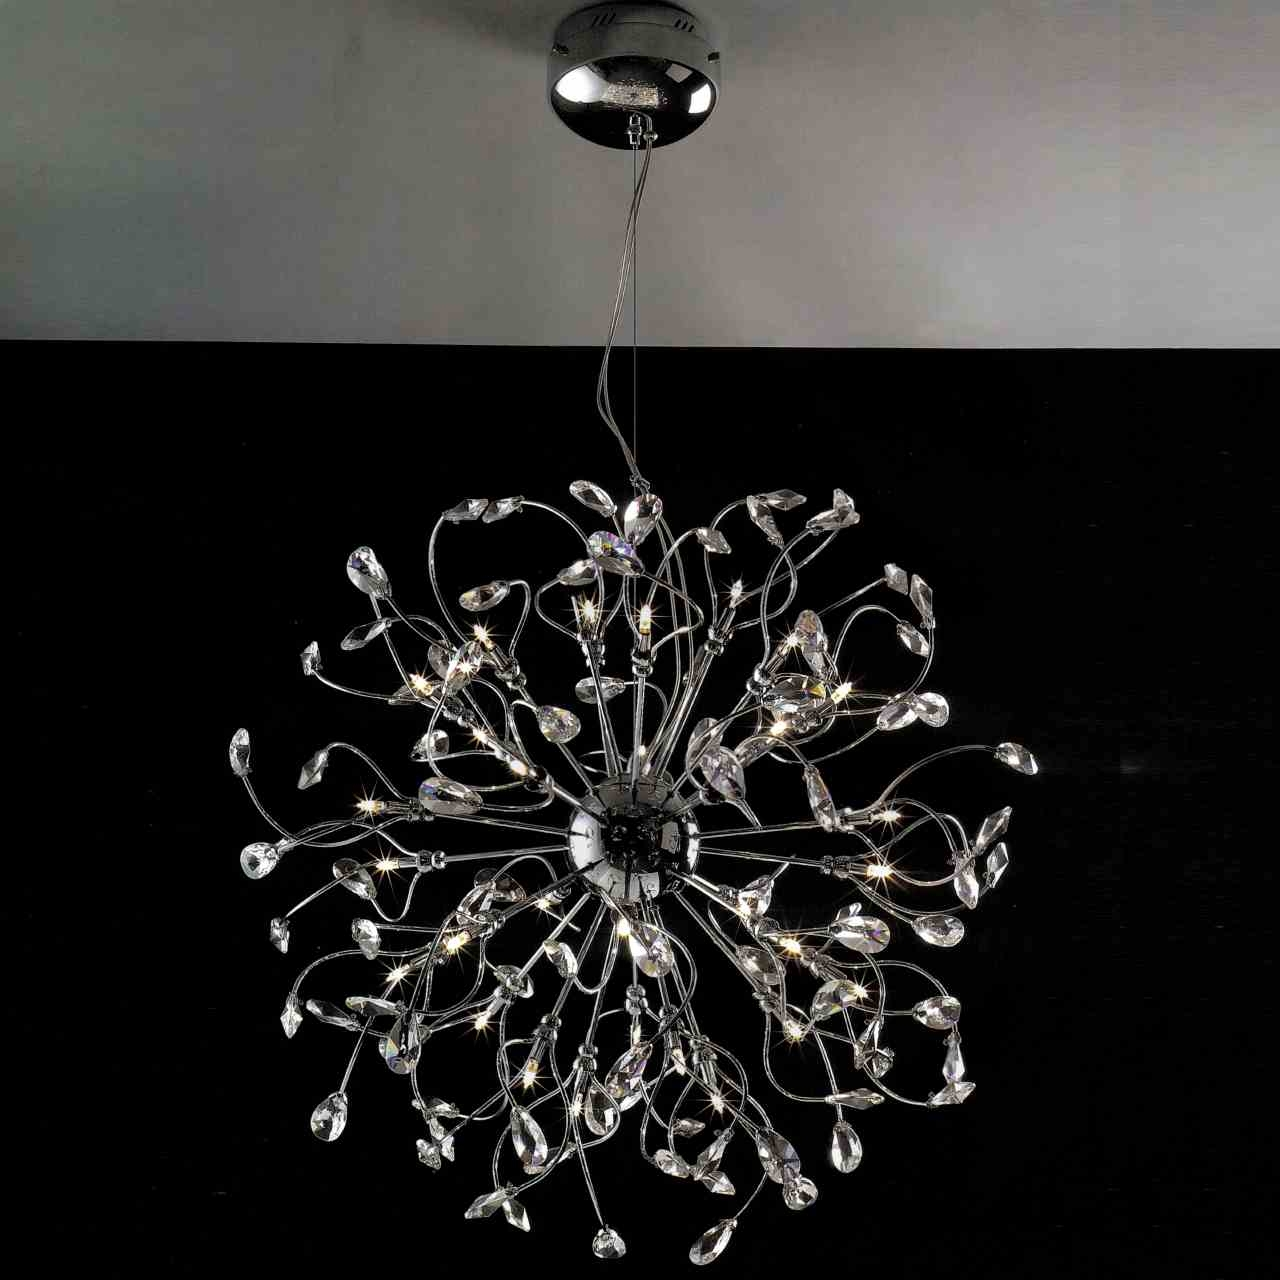 Brizzo Lighting Stores 19 Tempesta Modern Crystal Flush Mount Regarding Chrome And Crystal Chandeliers (Image 8 of 25)